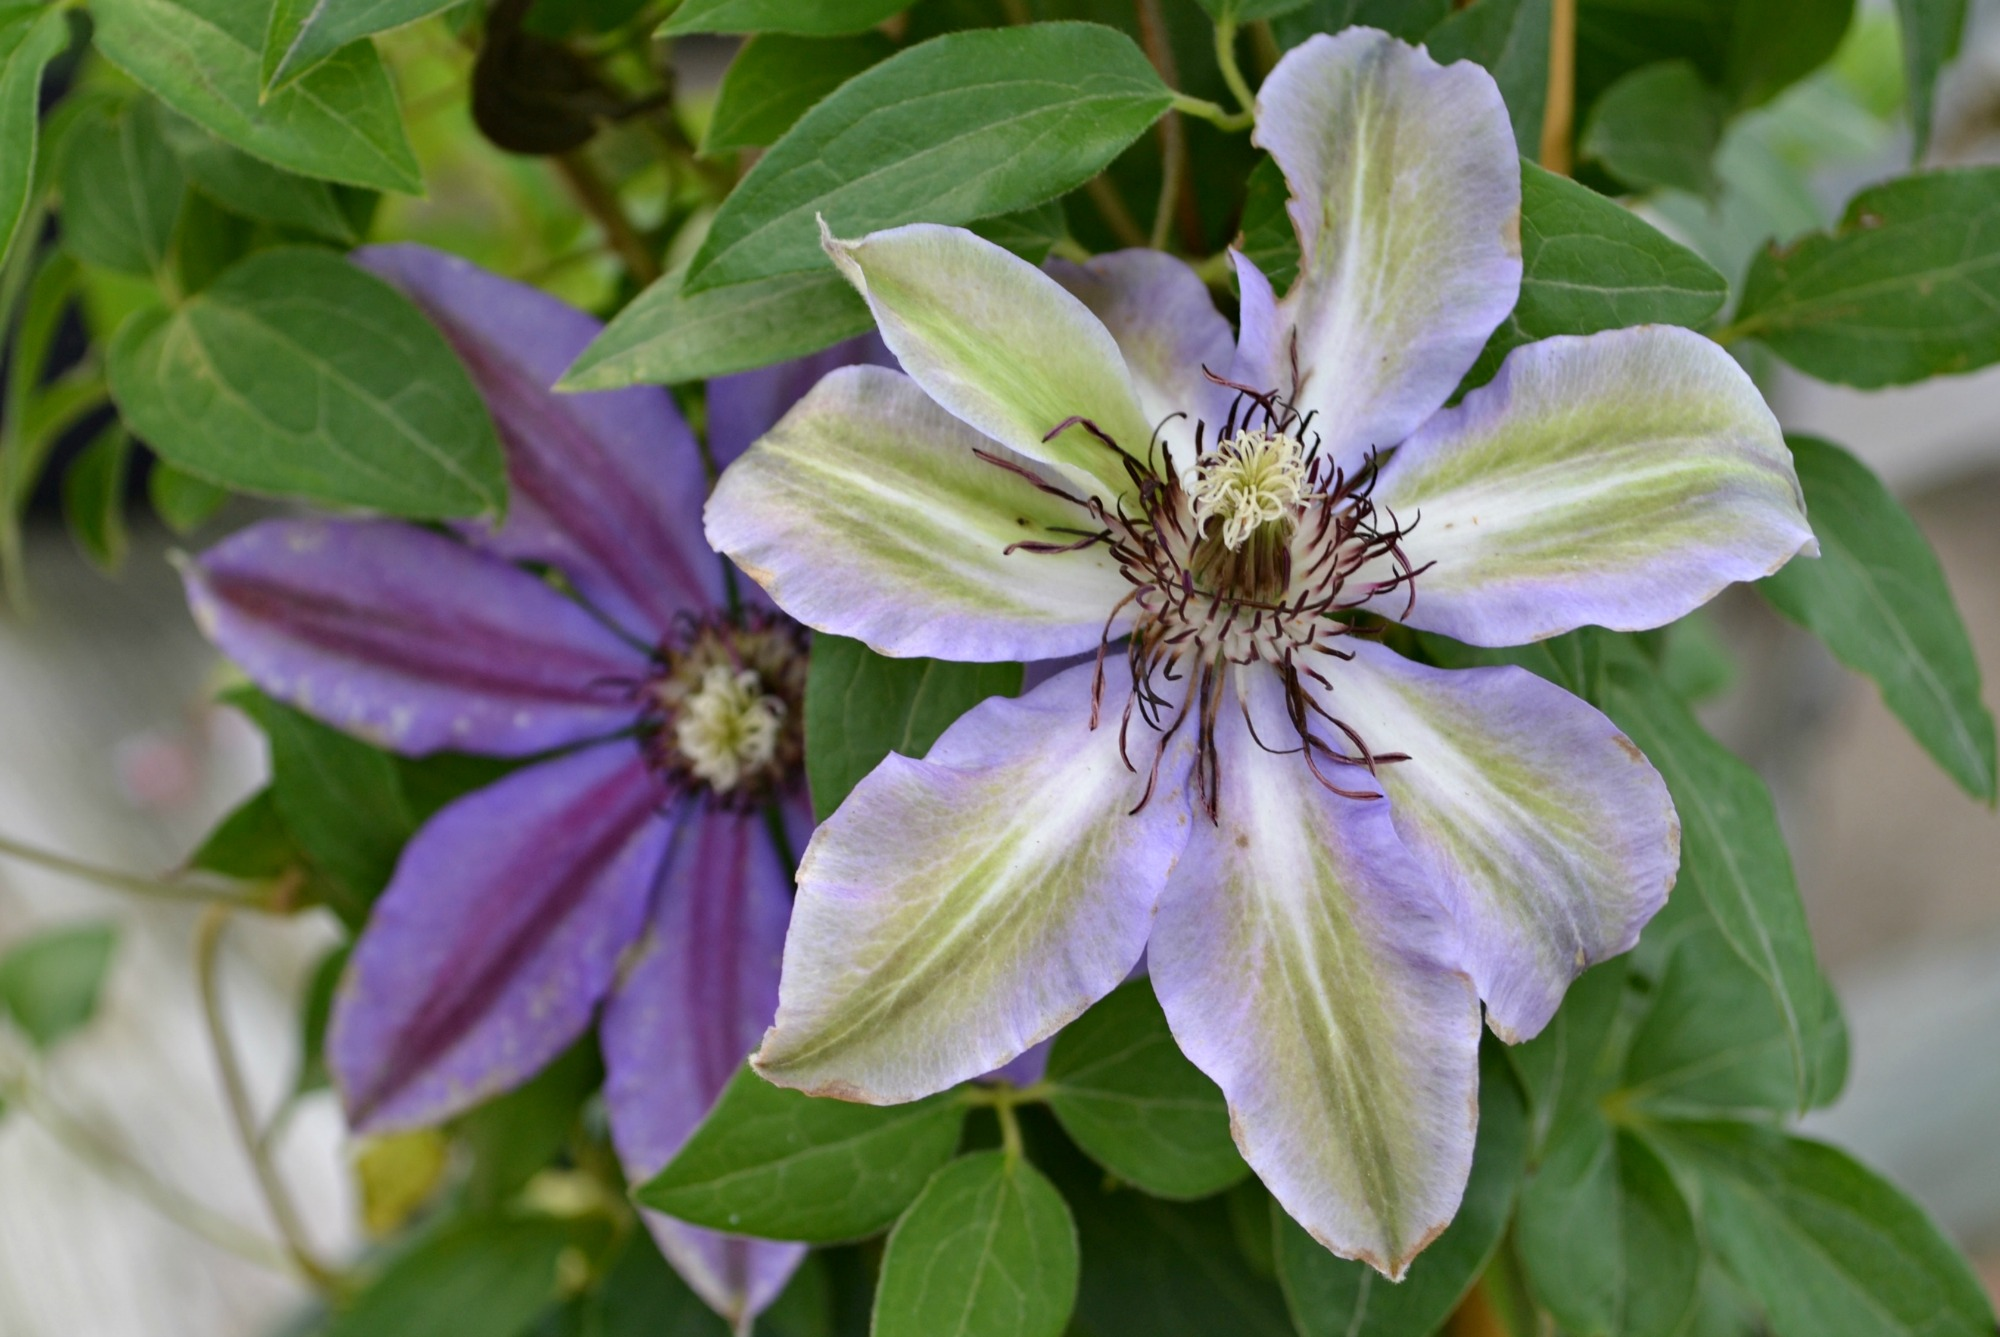 clematis Vancouver starry nights 2